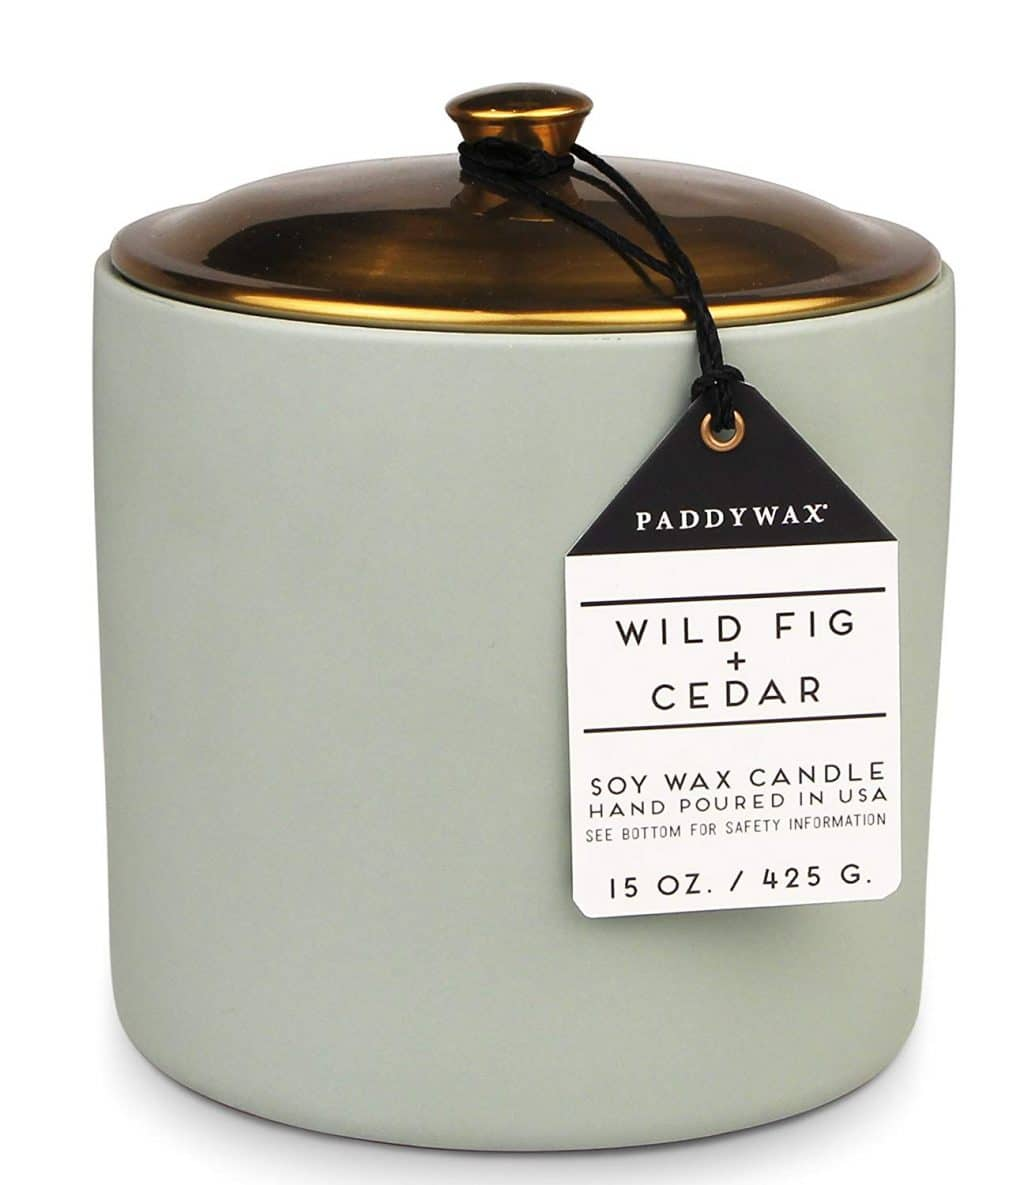 Paddywax Candles Hygge Collection Soy Wax Blend Candle in Ceramic Jar